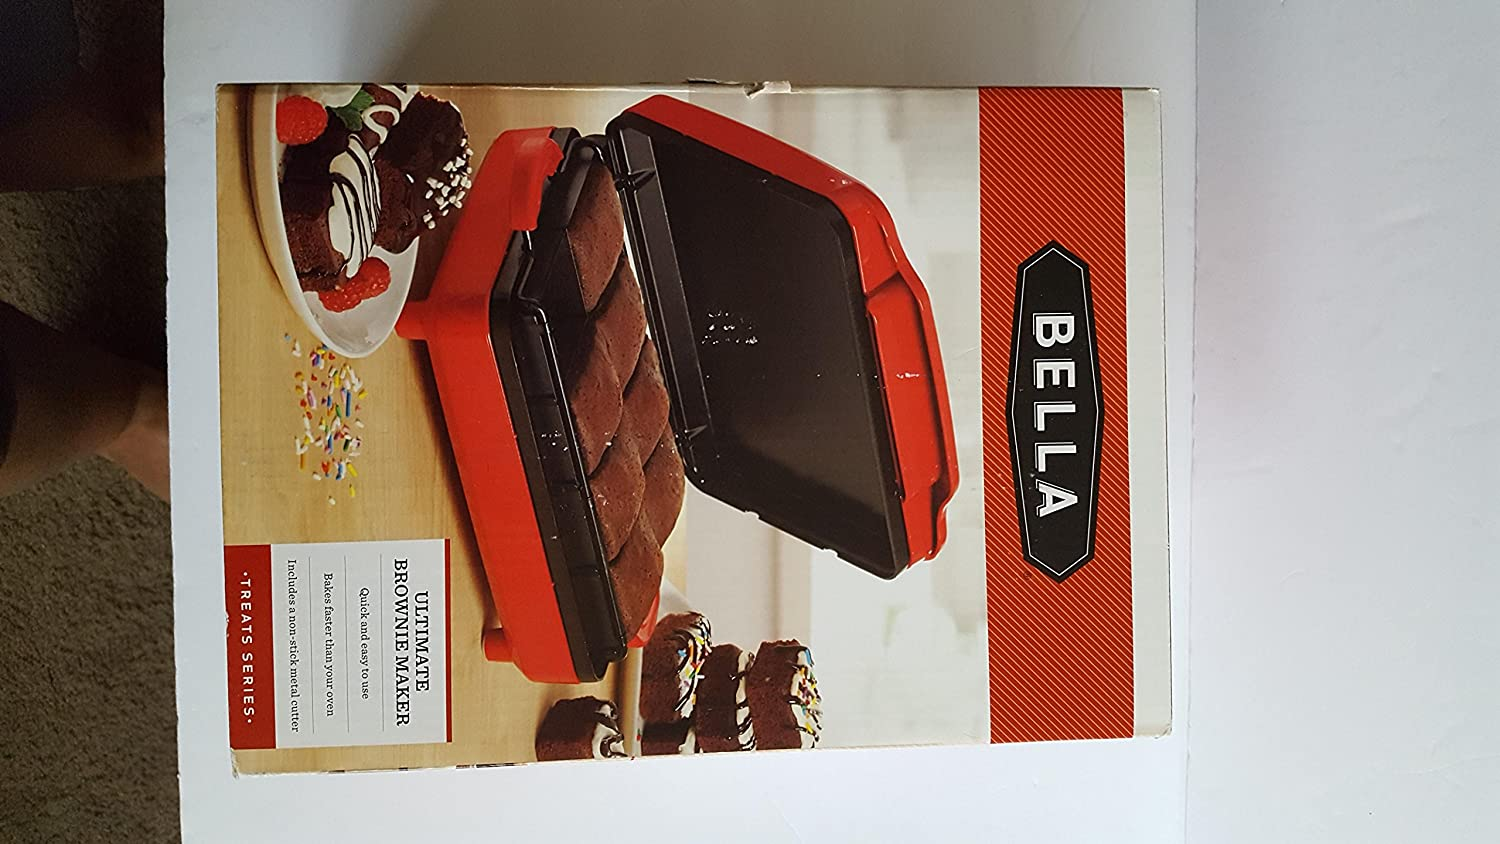 Sensio Bella 13540 Brownie Maker